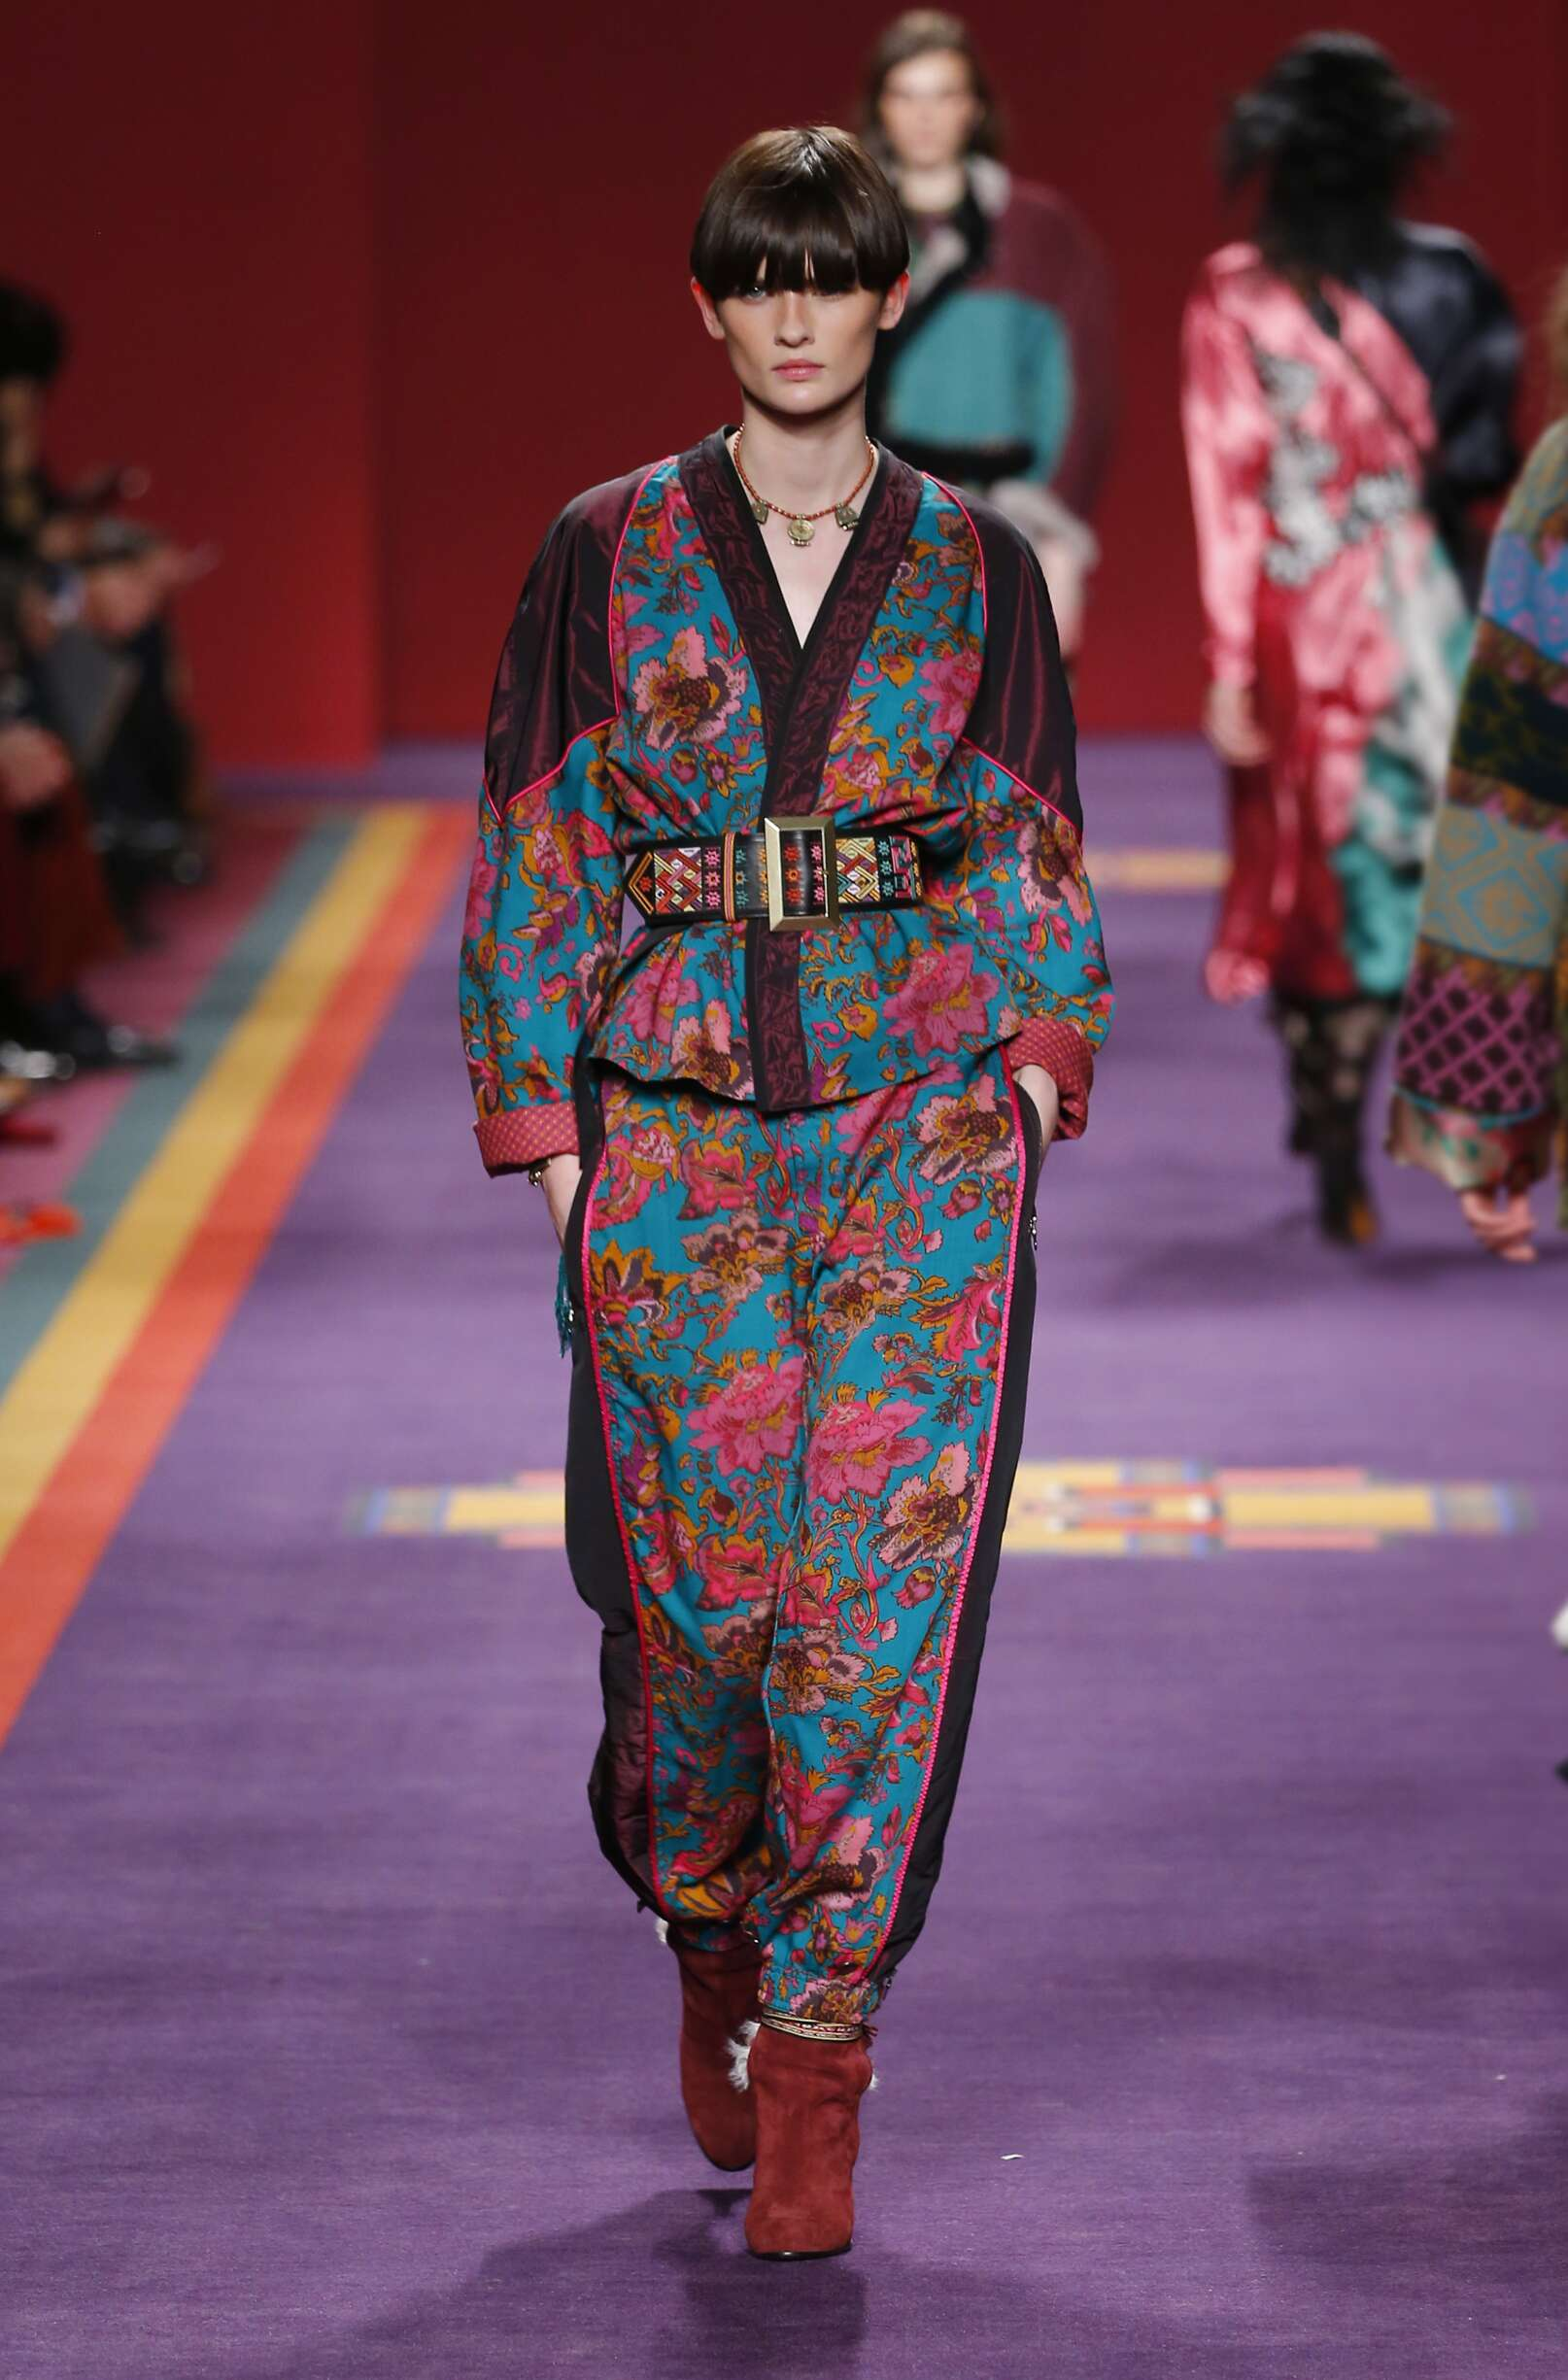 Catwalk Etro Woman Fashion Show Winter 2017